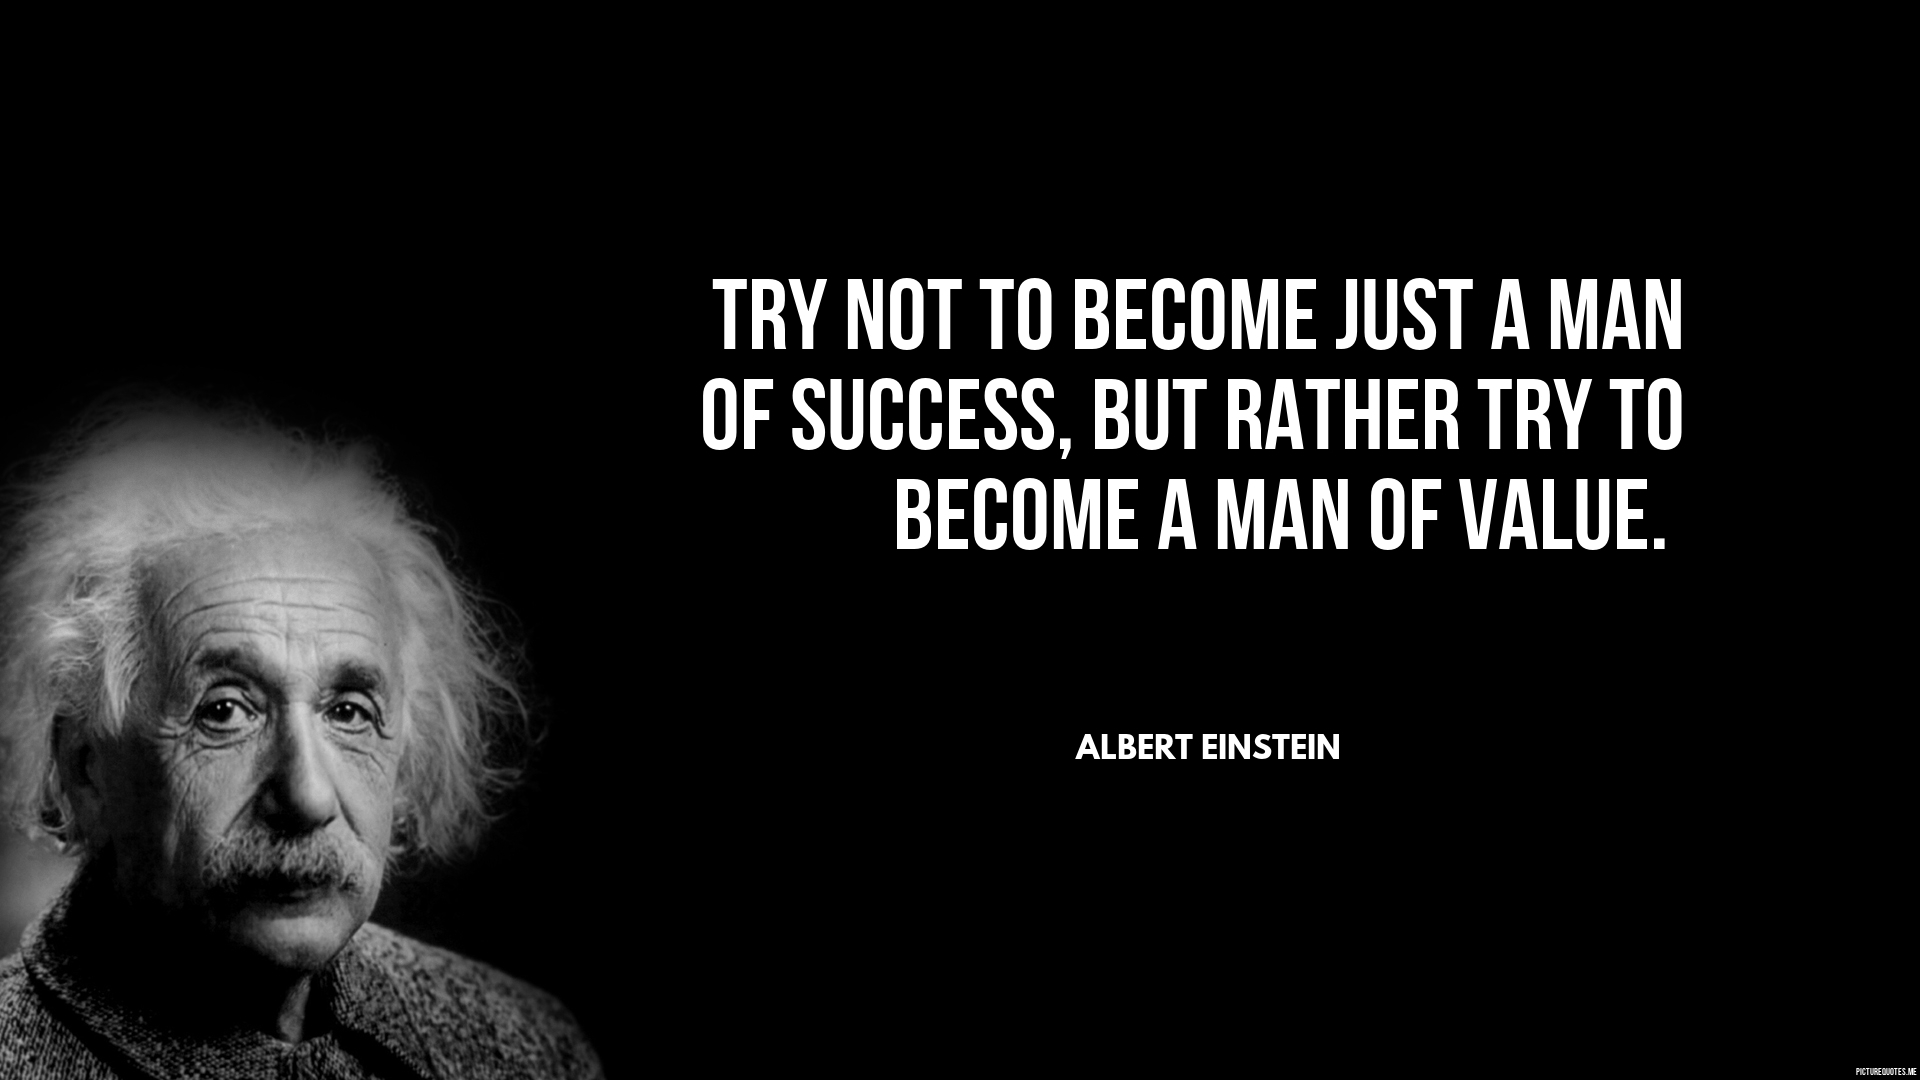 Albert Einstein Quotes Try Not To Become Just A Man Of Success But Rather Try To Become